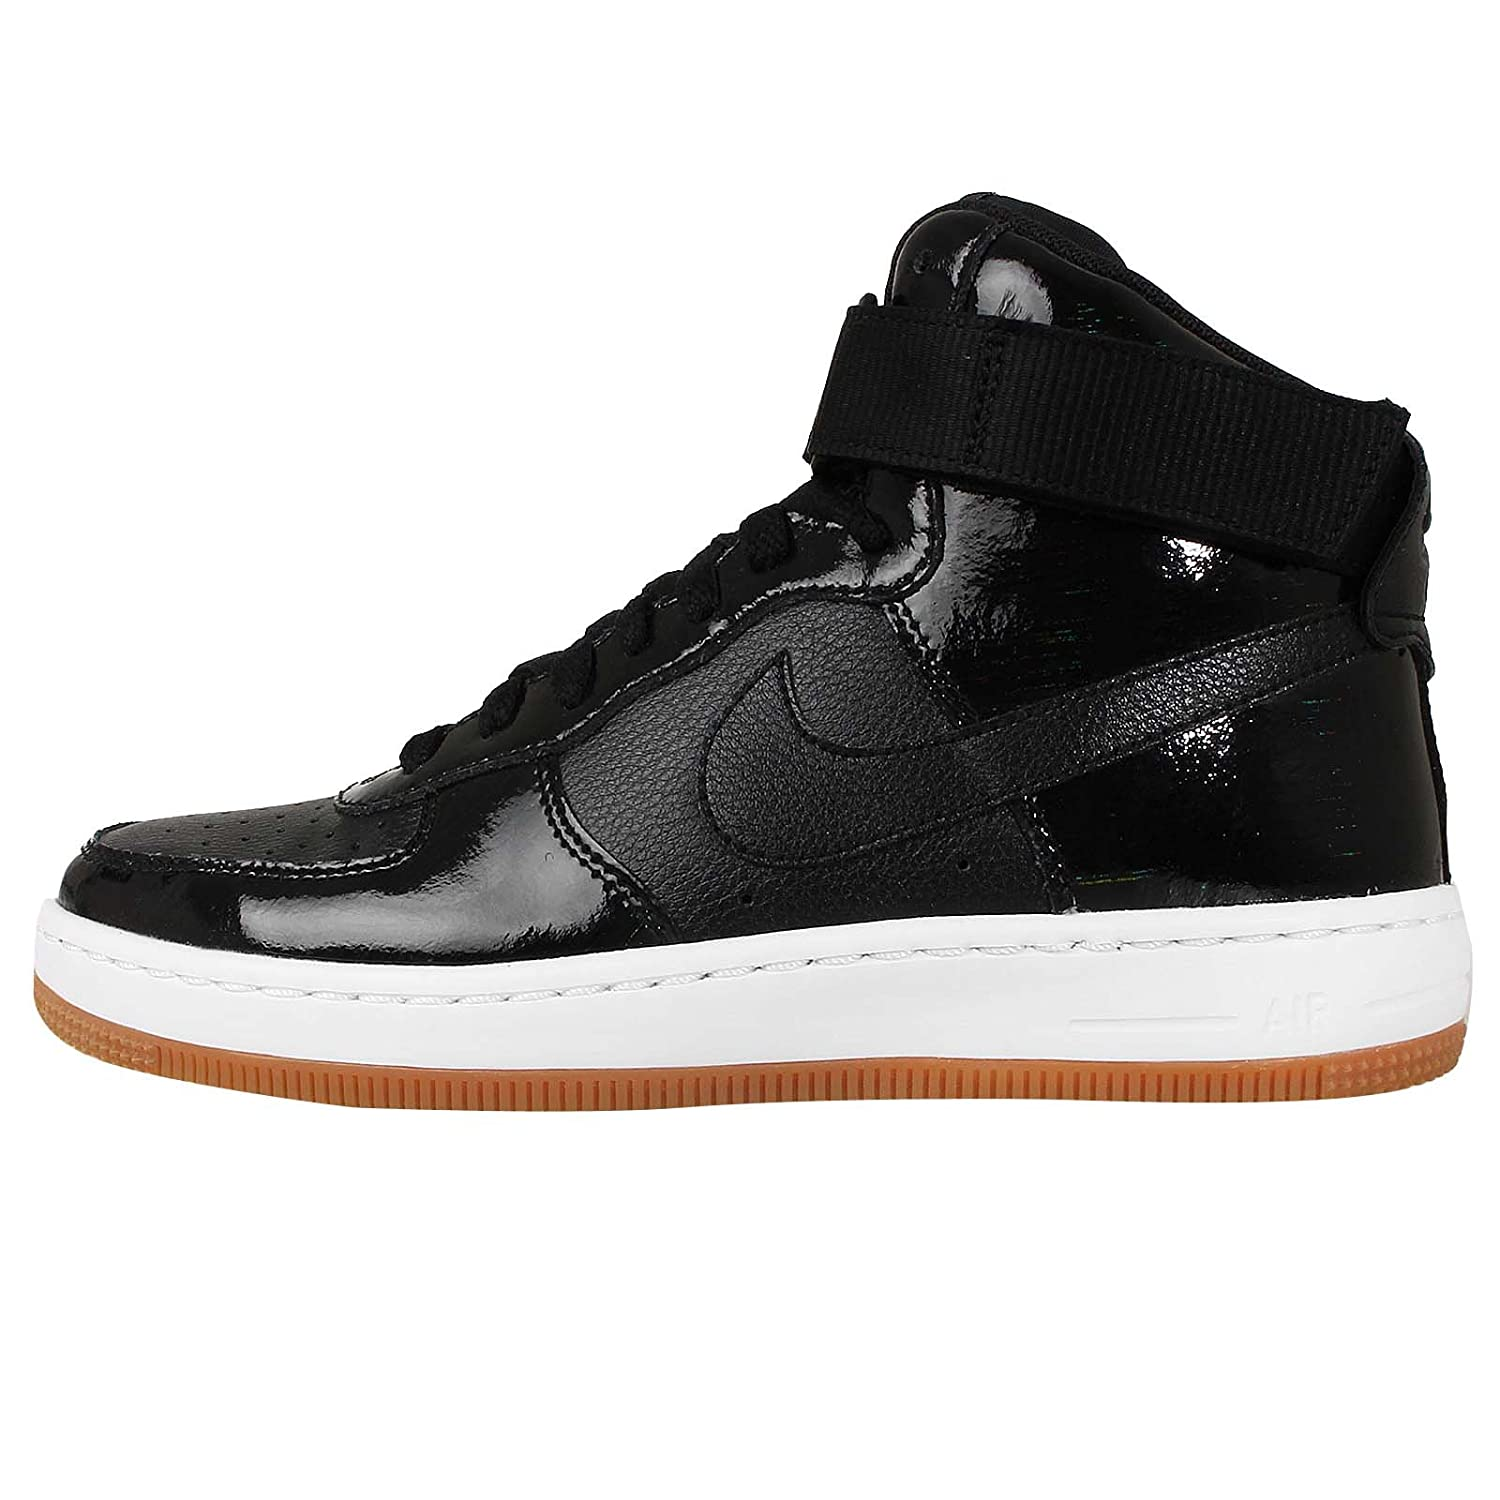 0b68c39ff Nike Women's AF-1 Ultra Force Mid High-top Trainers: Amazon.co.uk ...